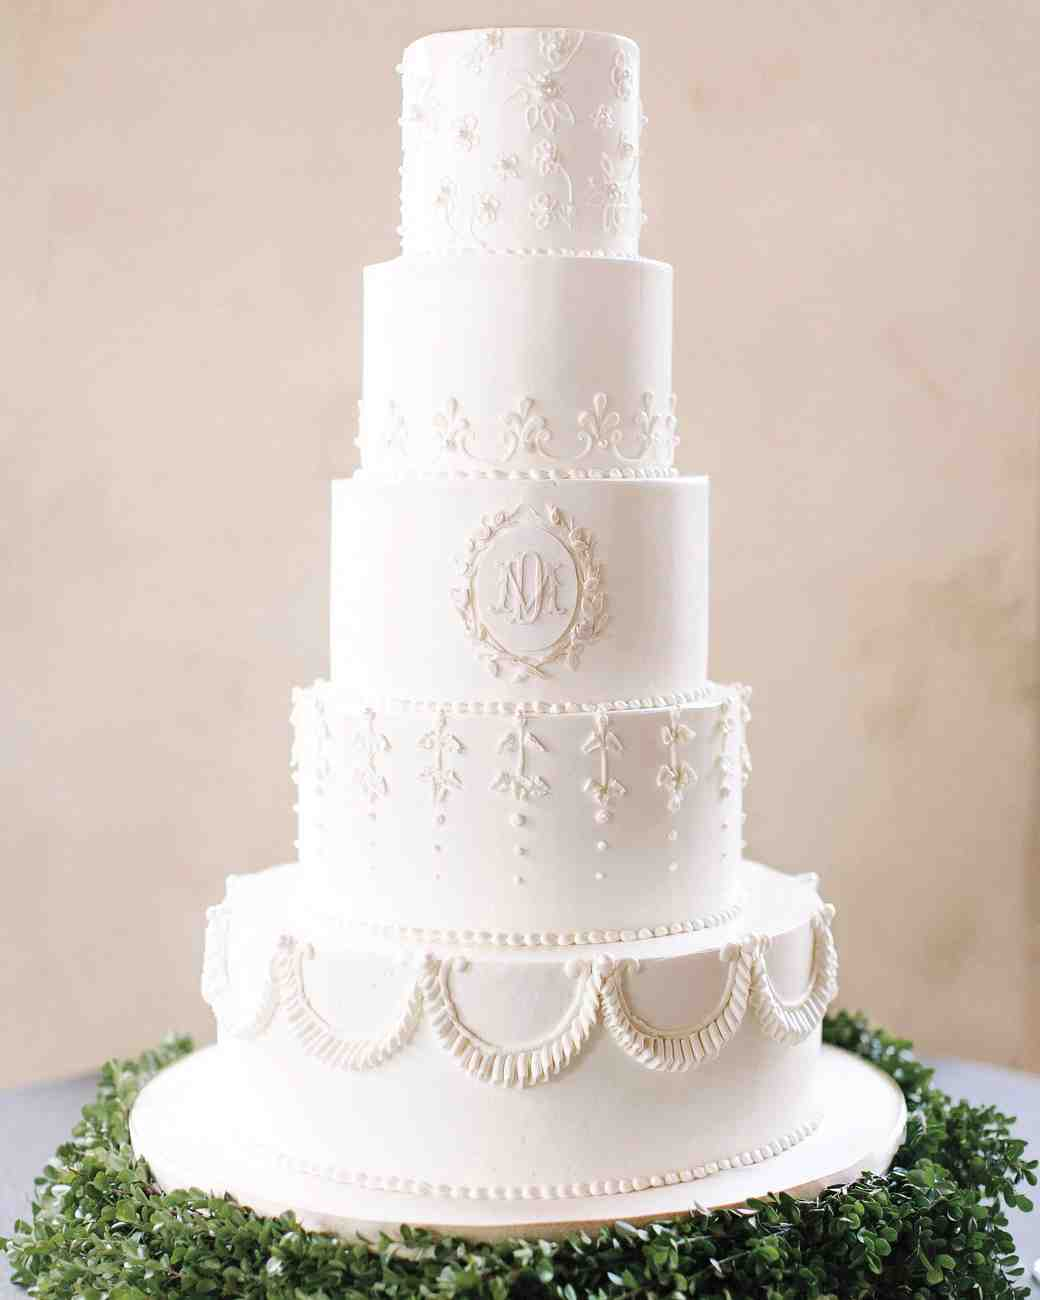 Five-Tiered Monogrammed White Wedding Cake